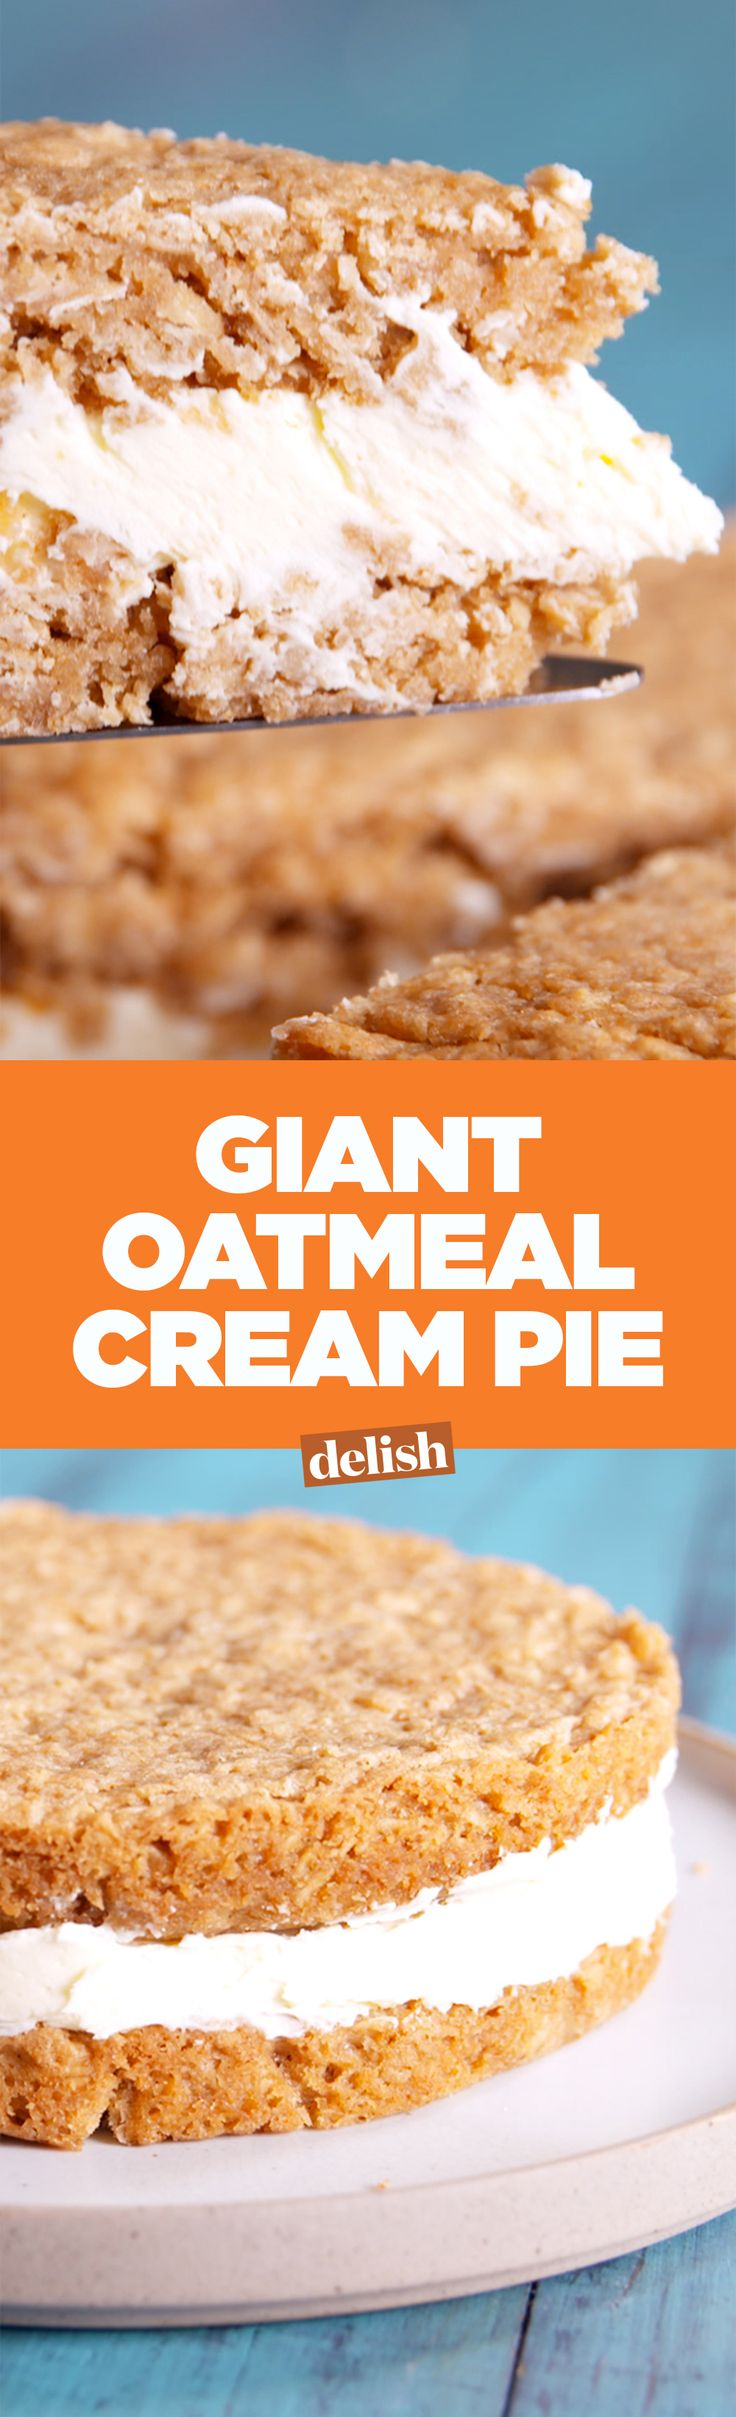 This giant oatmeal cream pie is a bigger, better version of your favorite Little Debbie snack. Get the recipe on Delish.com.